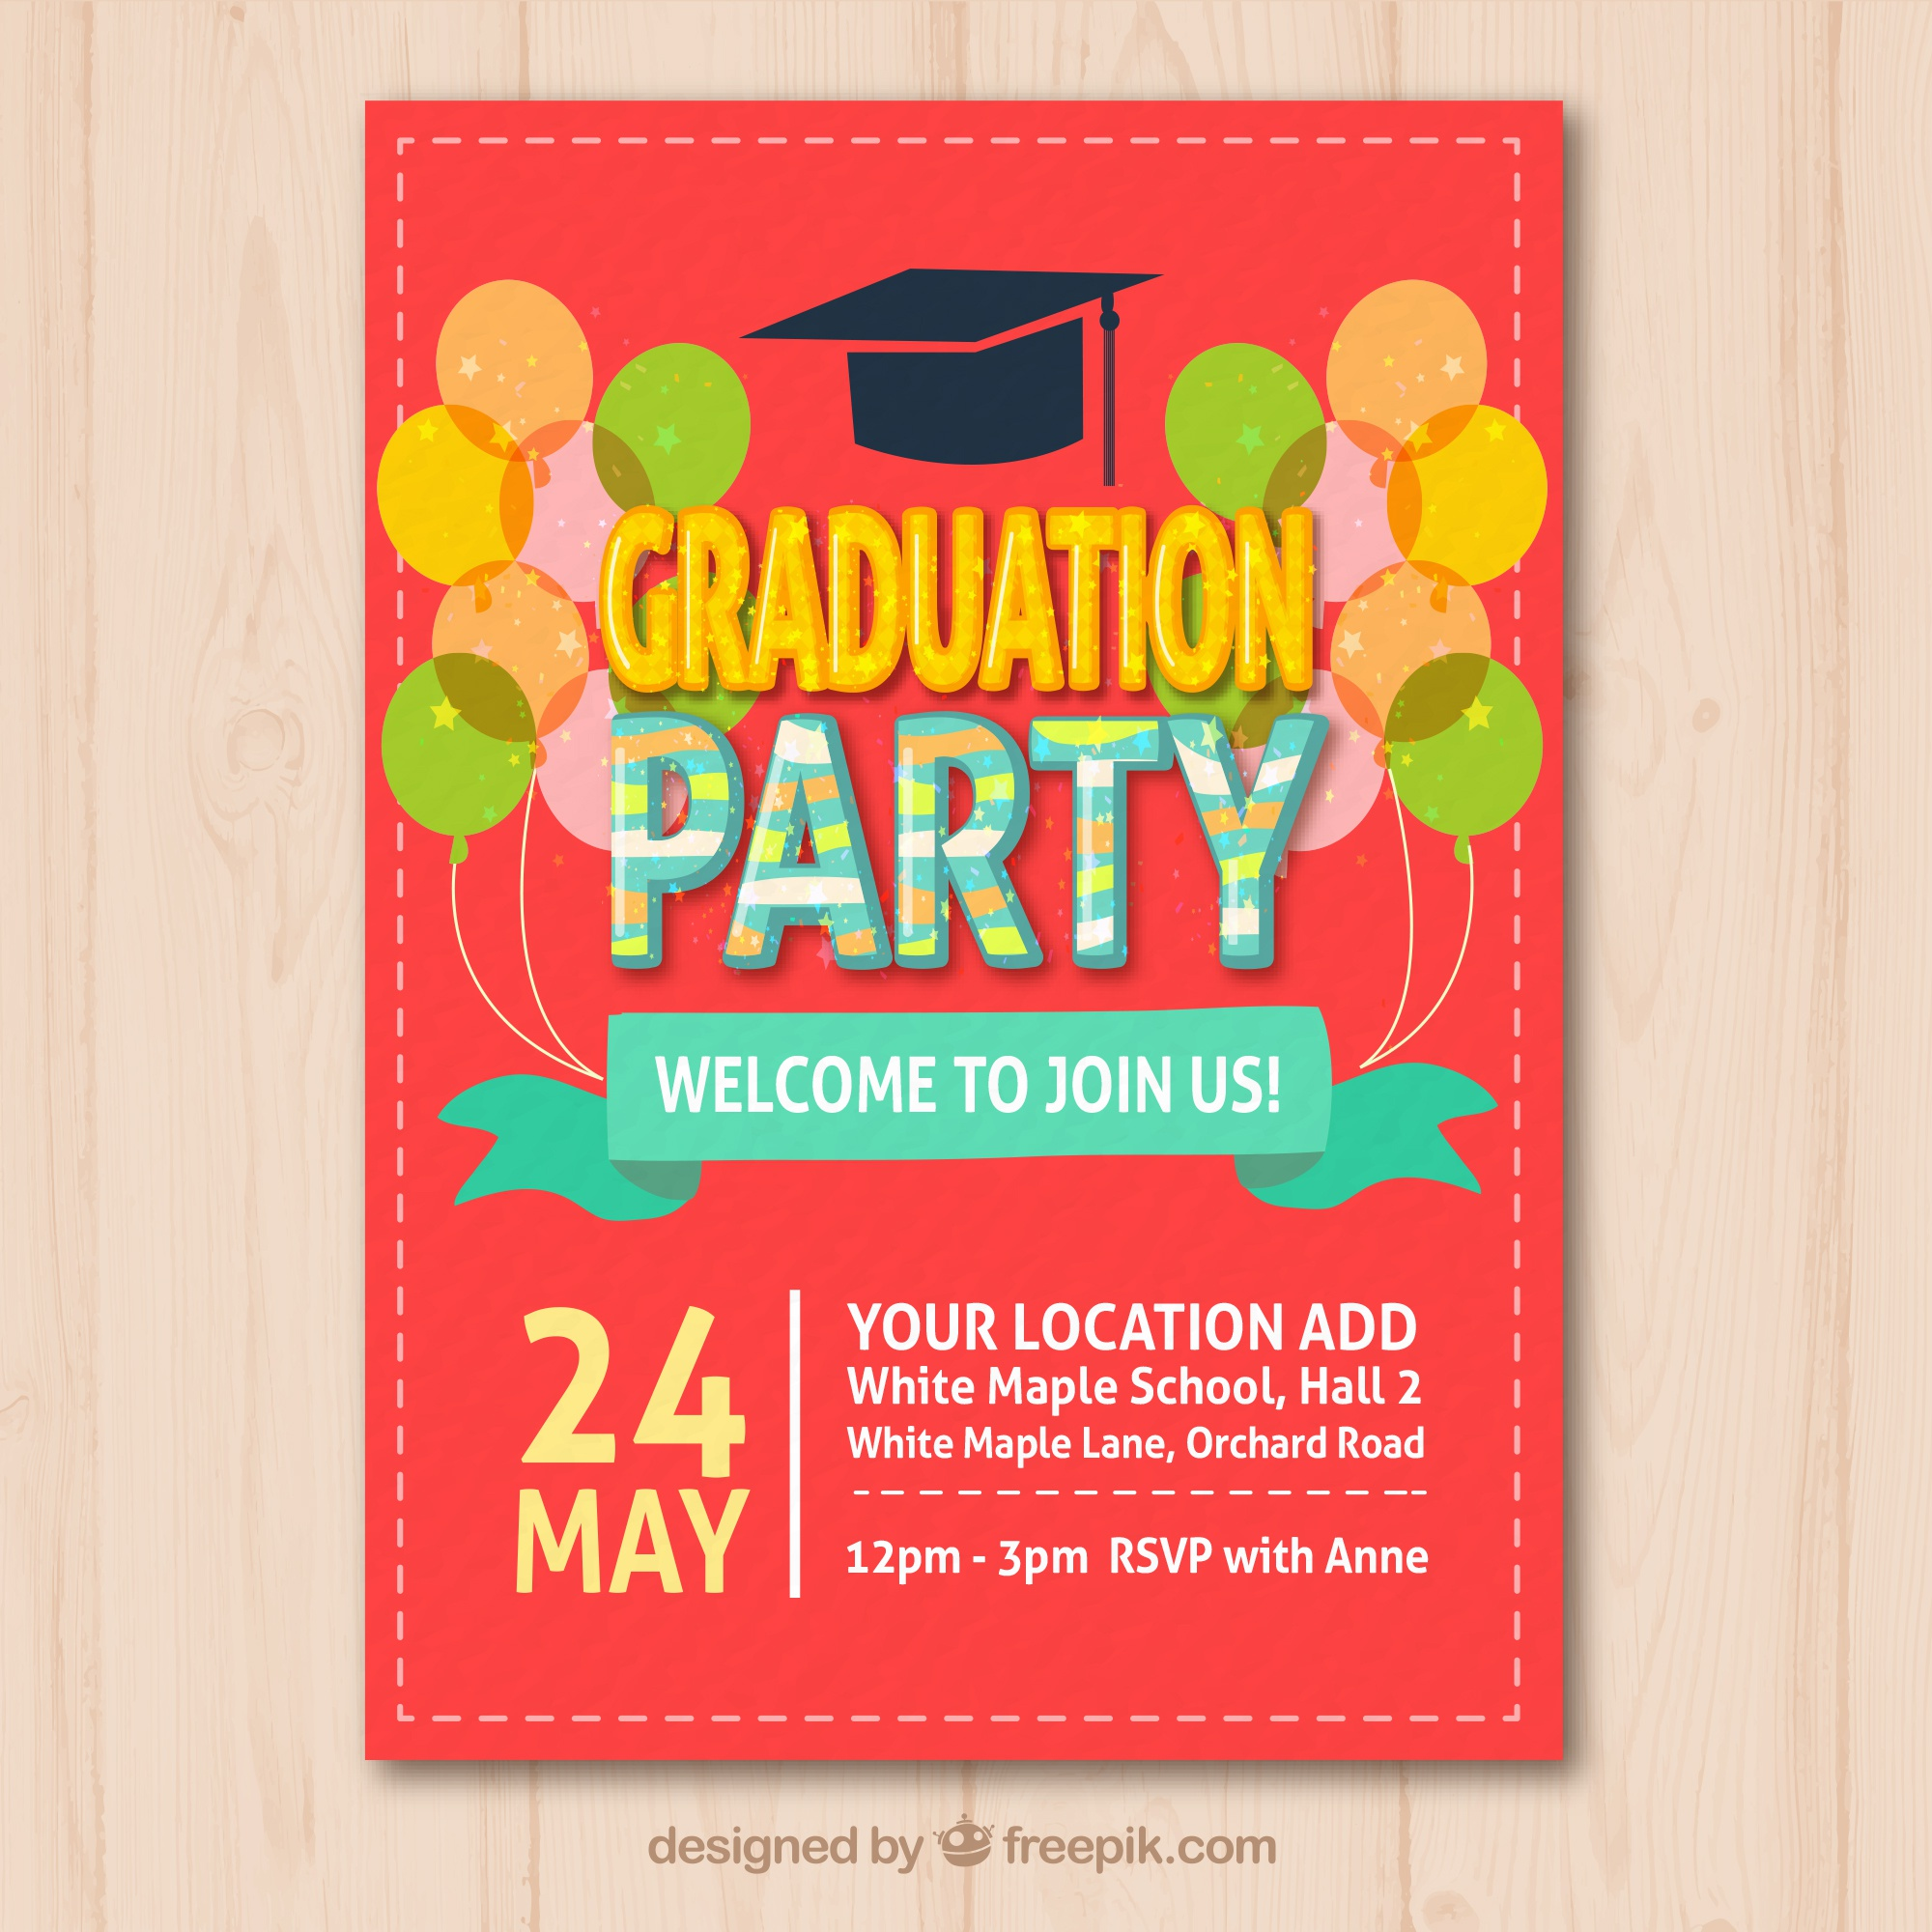 Colored graduation party leaflet with decorative balloons